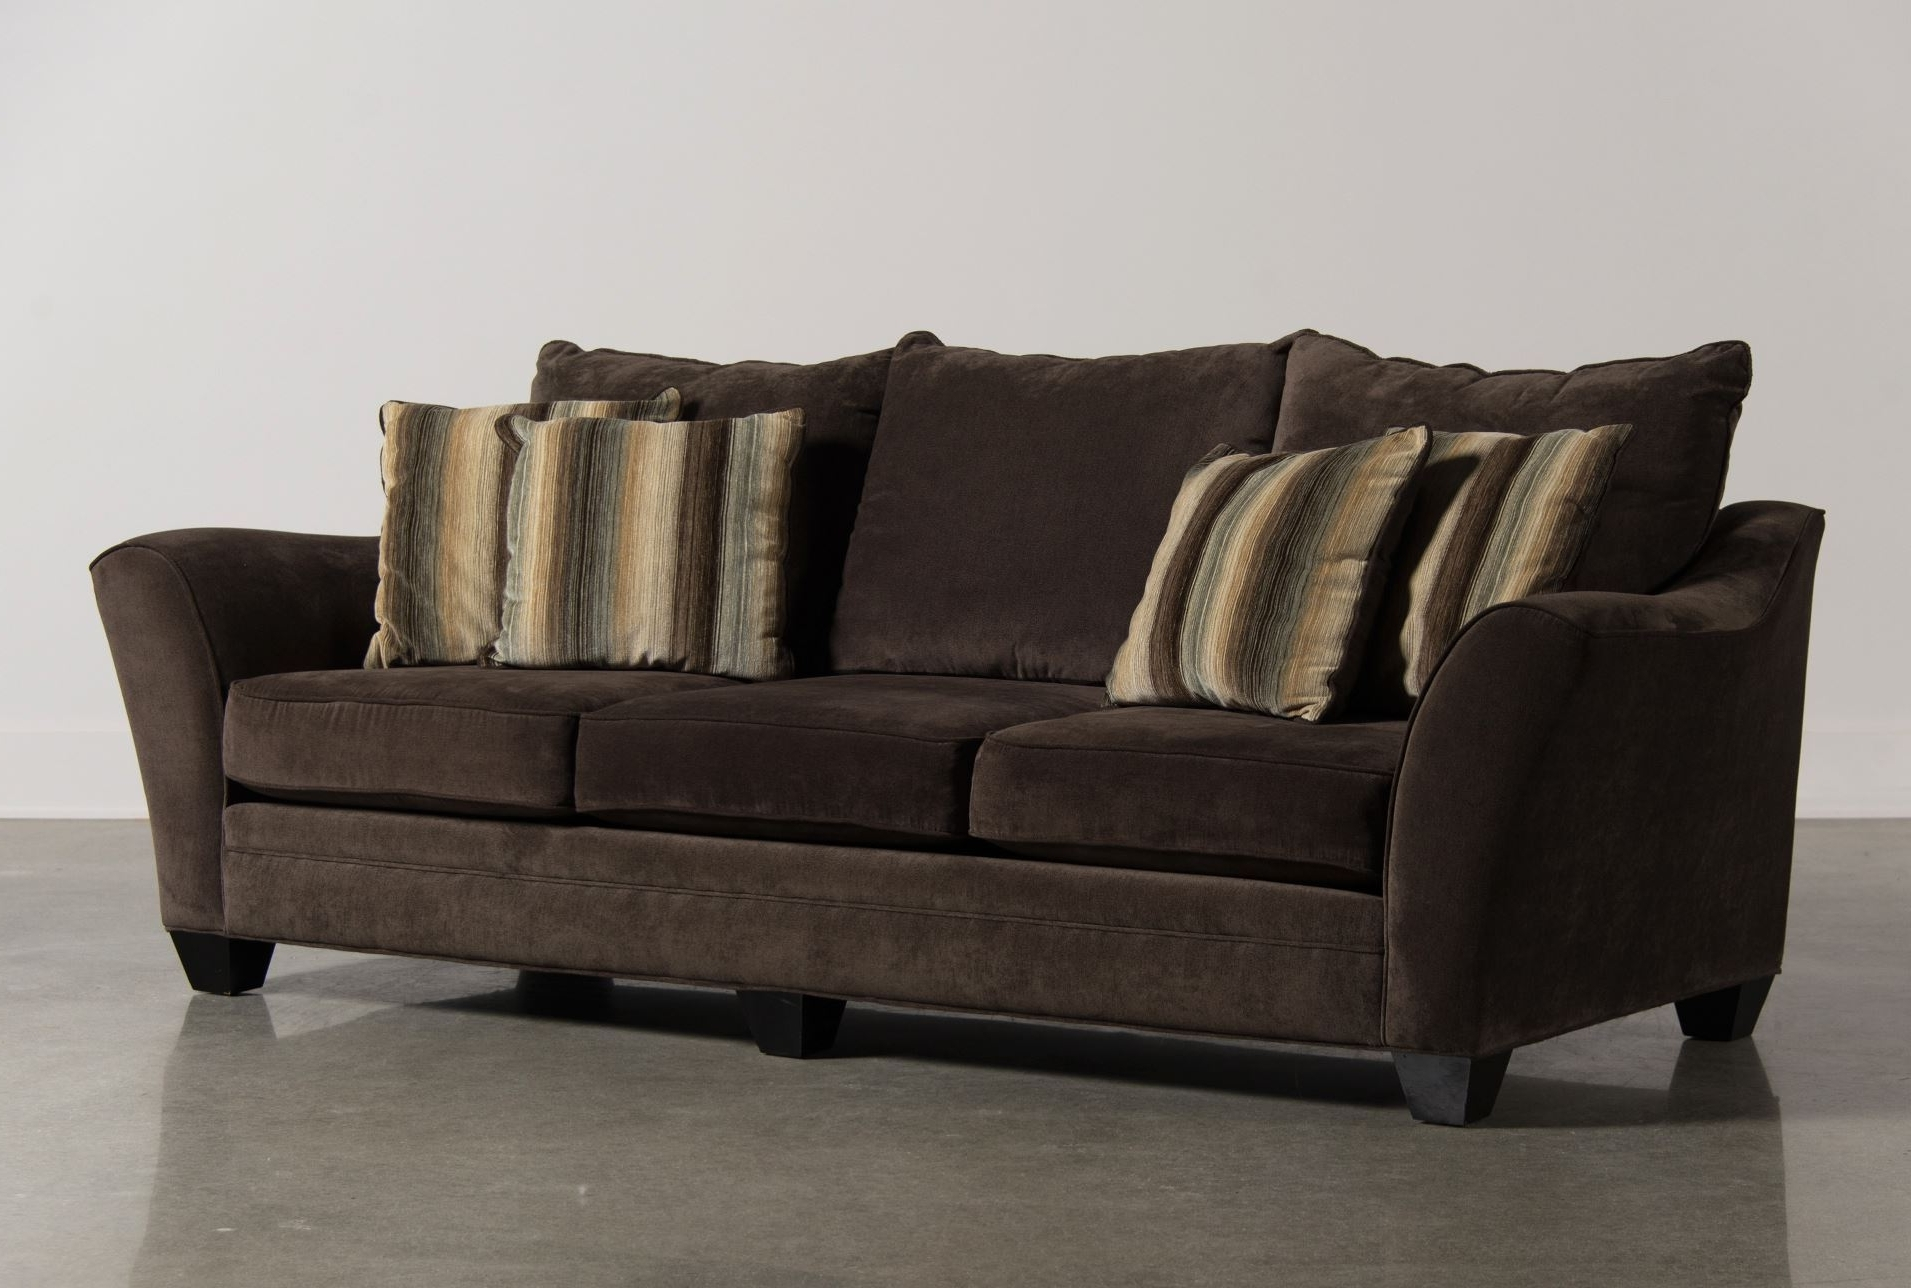 Comfortable Sofas And Chairs Within Preferred Belleview Slate Sofa – Living Spaces One Of The Most Comfortable (View 16 of 20)